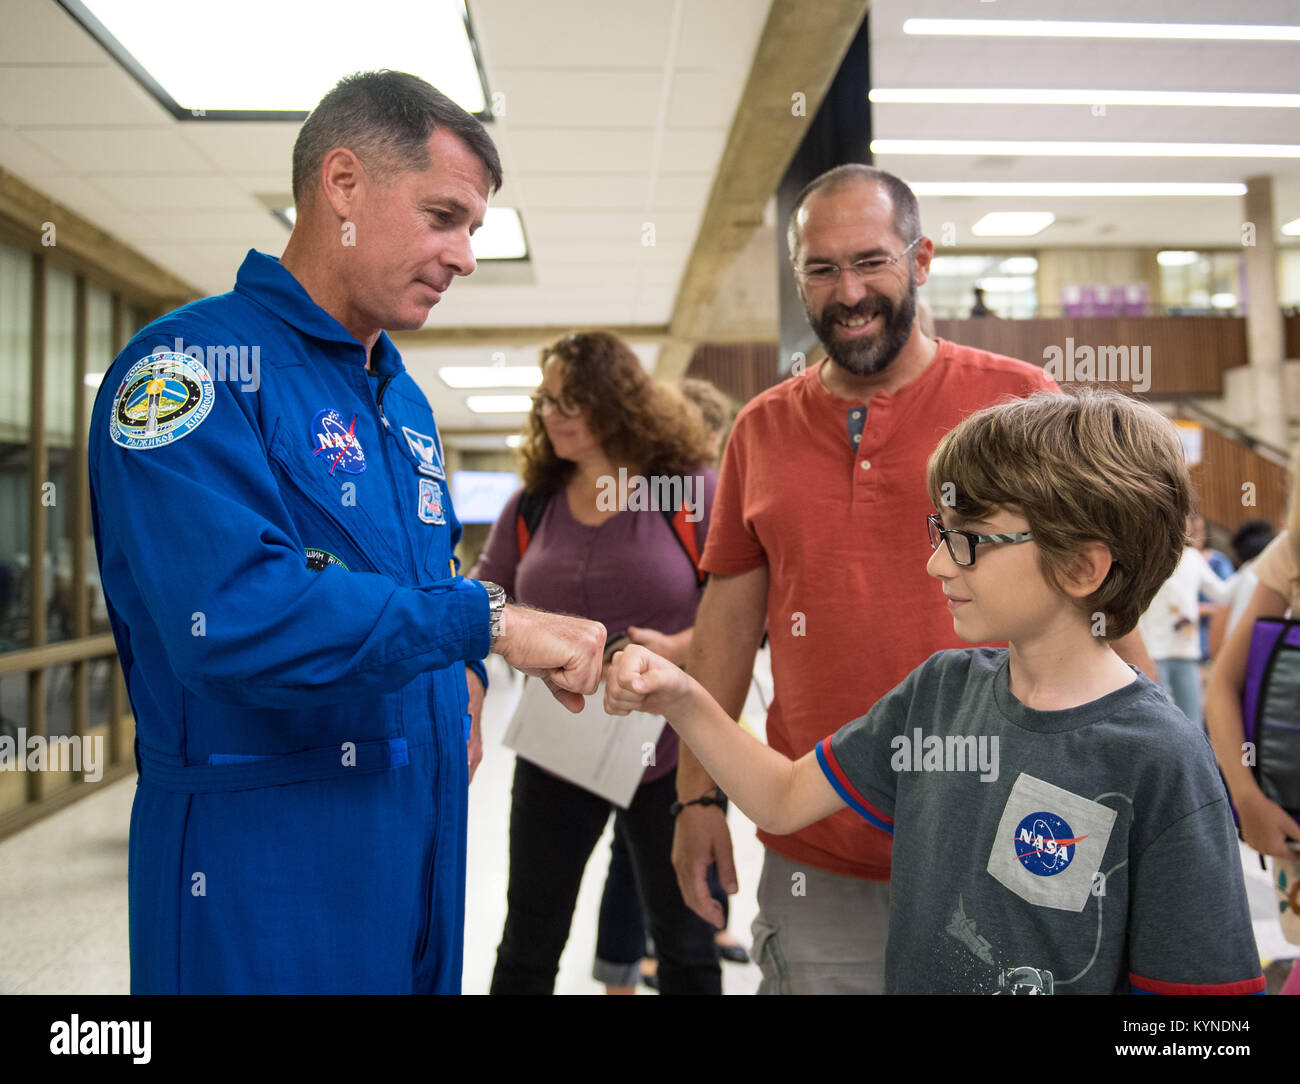 NASA astronaut Shane Kimbrough gives Nikola a fist bump after a presentation about his time onboard the International - Stock Image